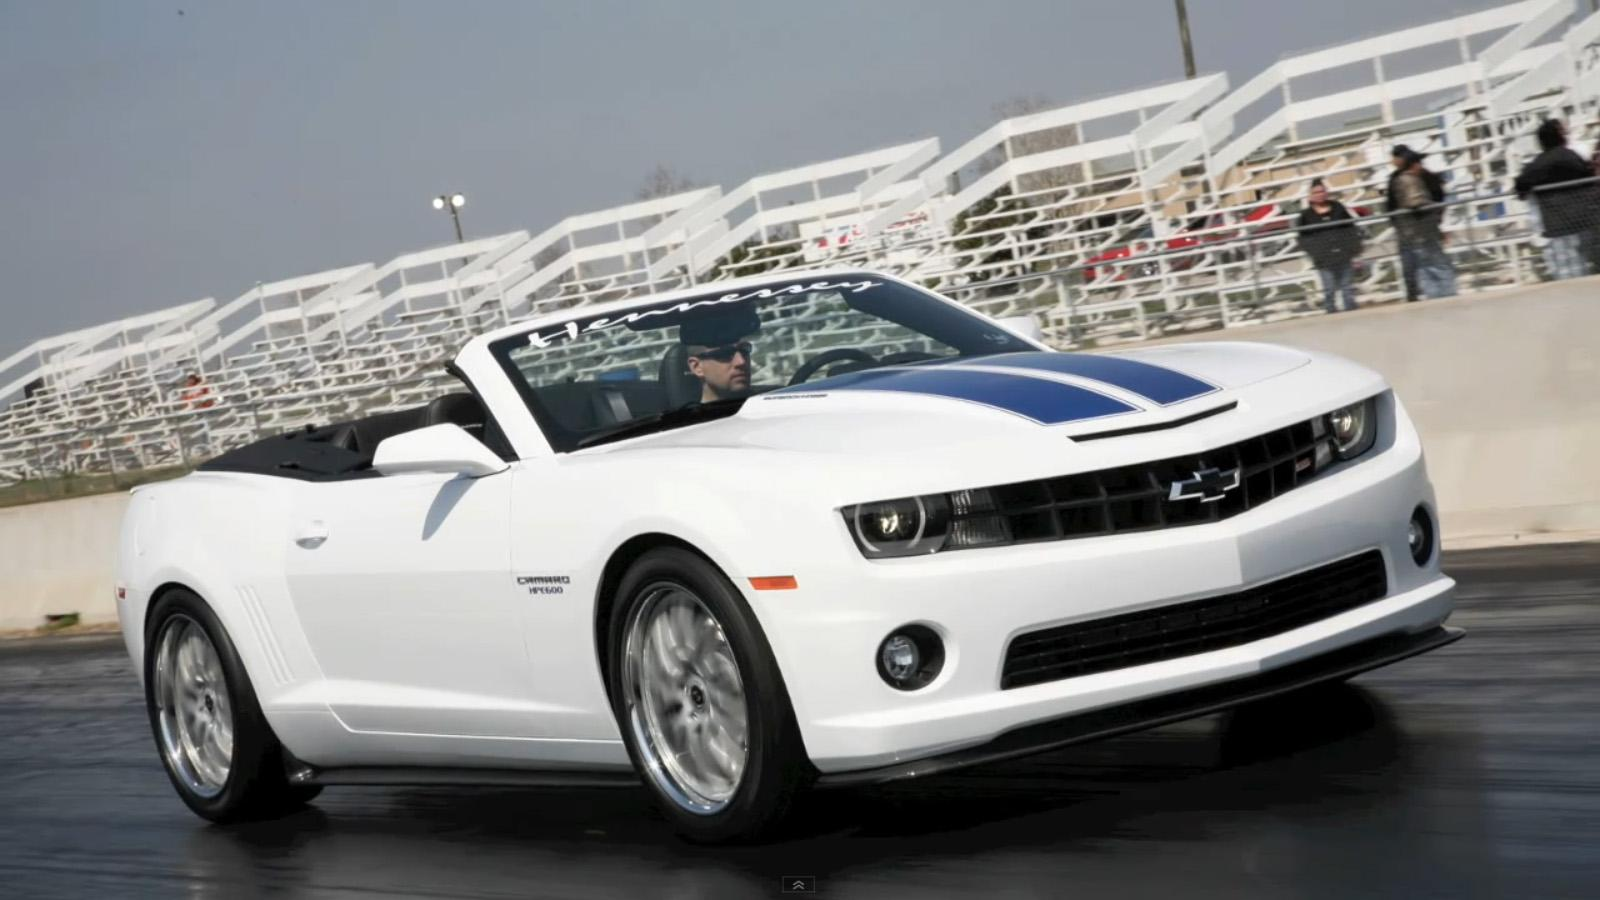 2011 Chevrolet Camaro Convertible Hpe600 By Hennessey